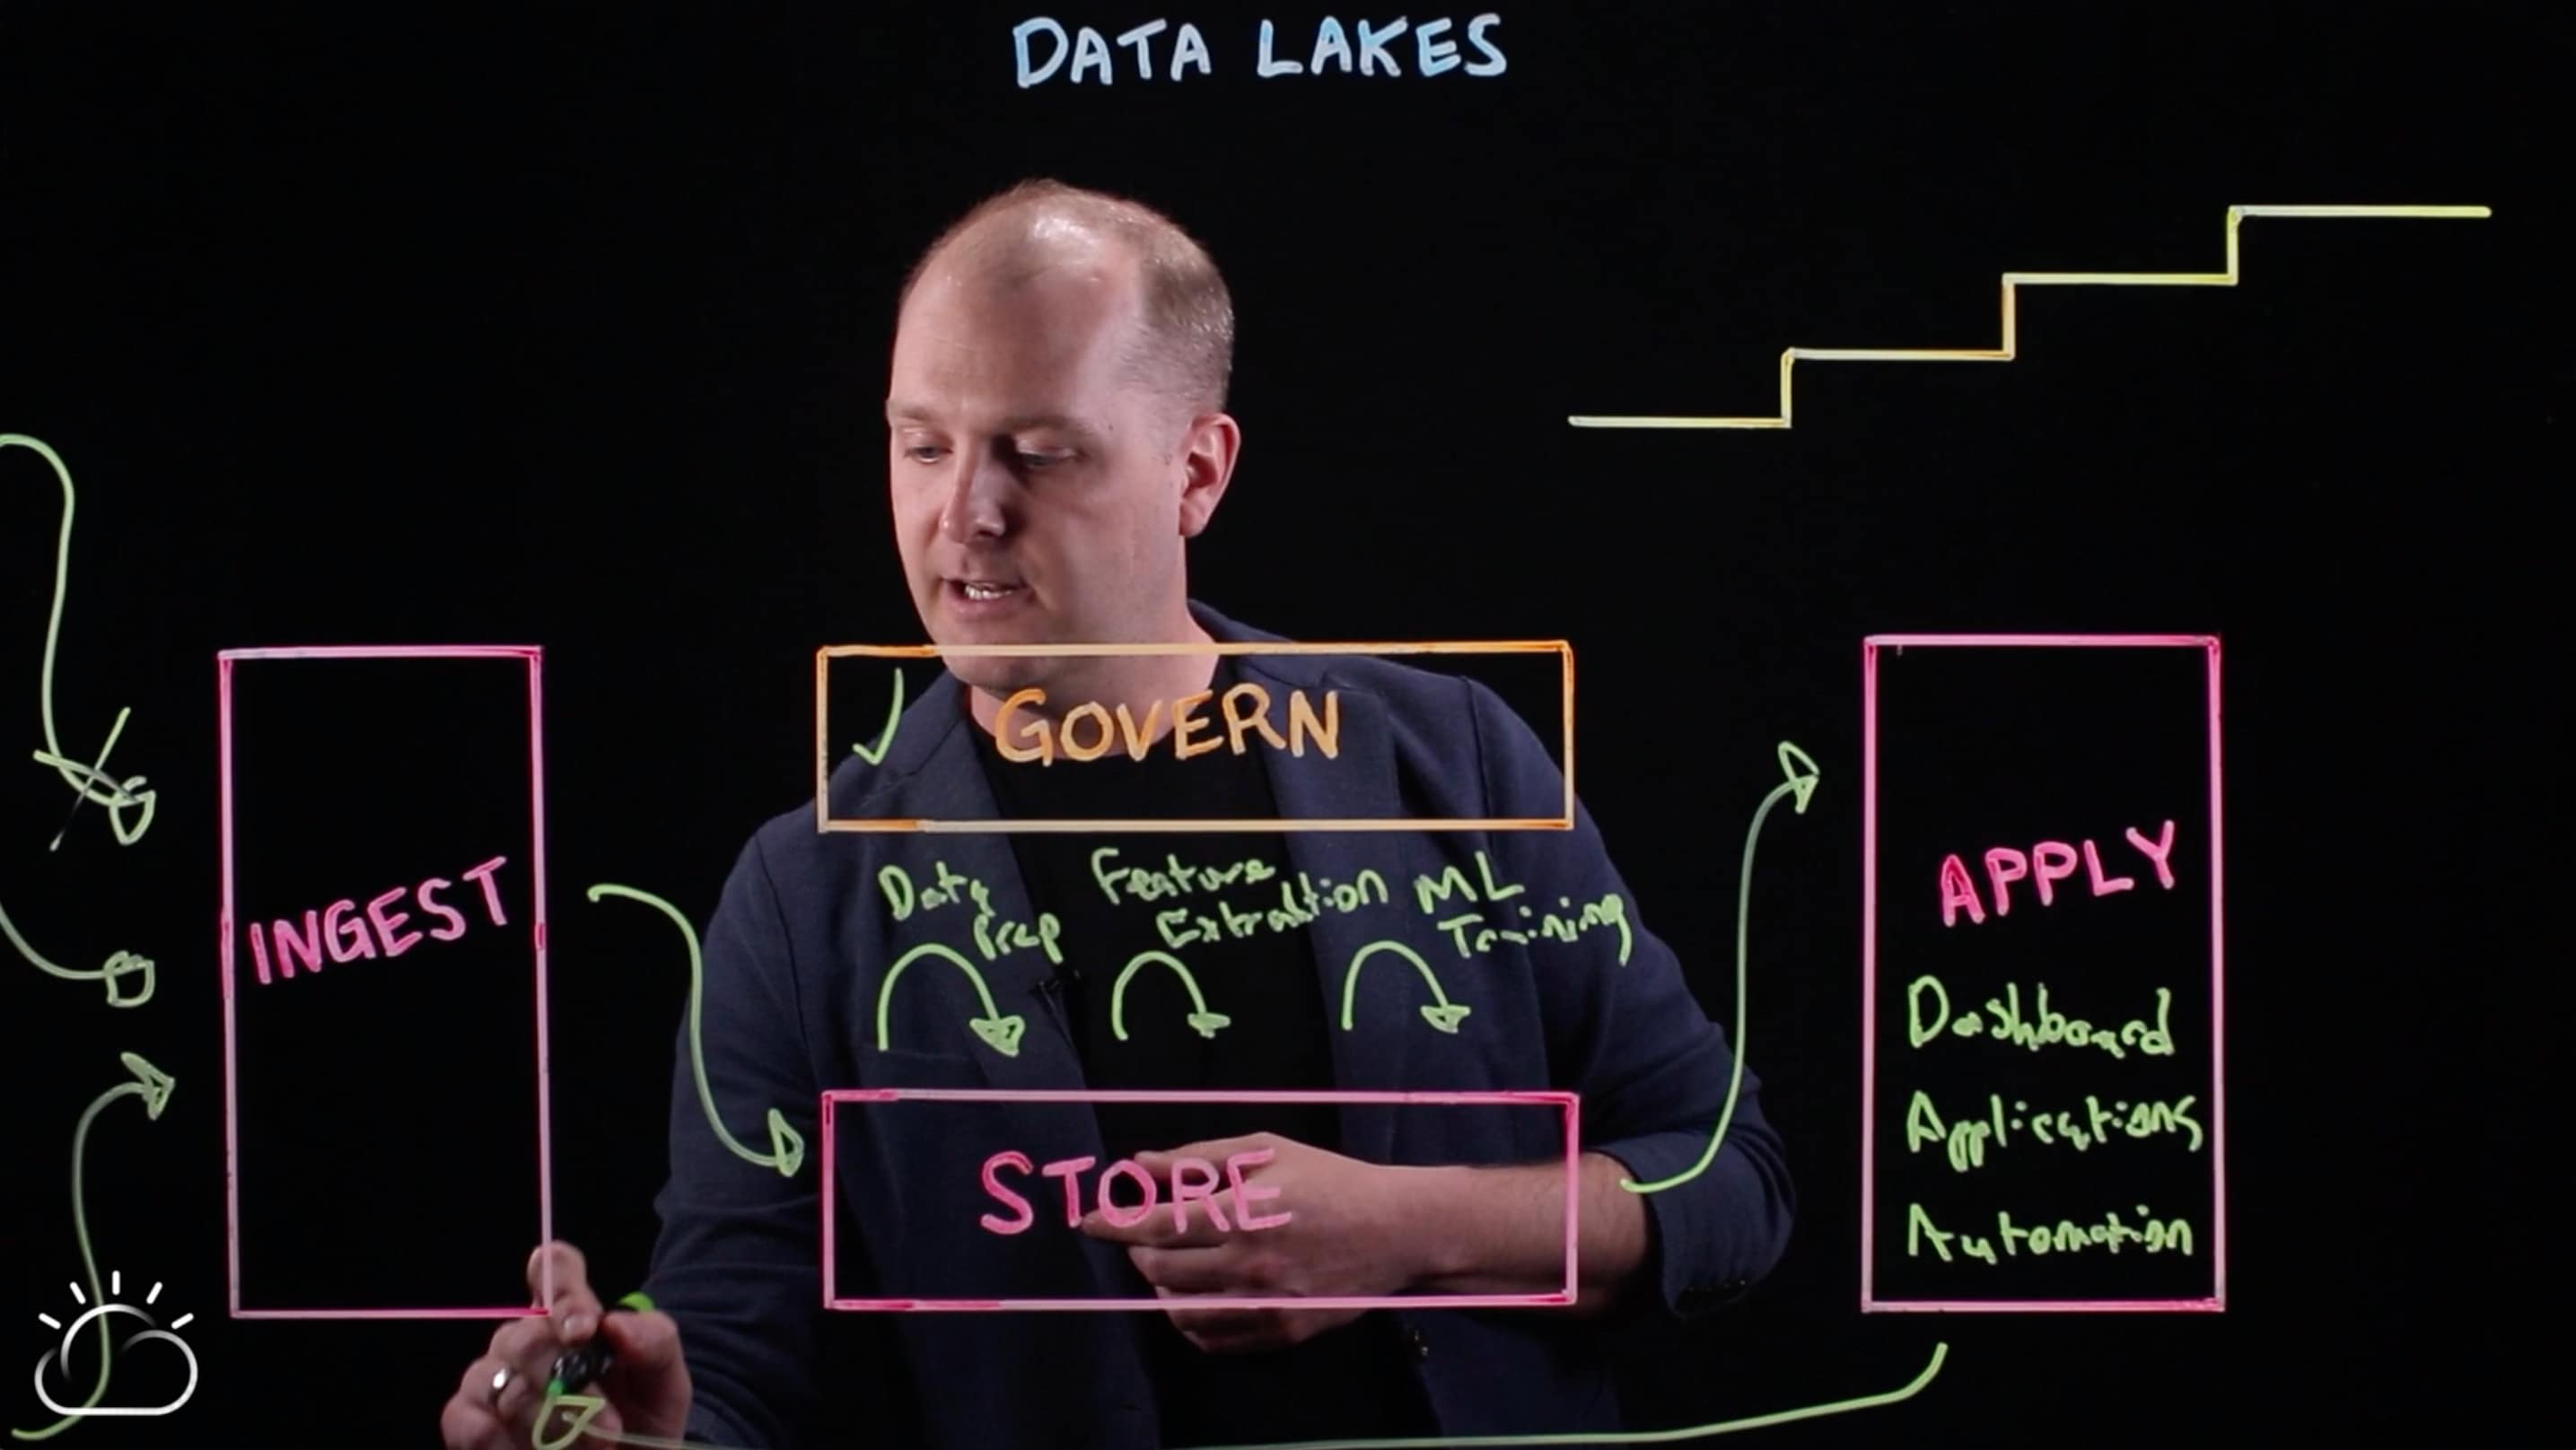 Iterative process of data lakes